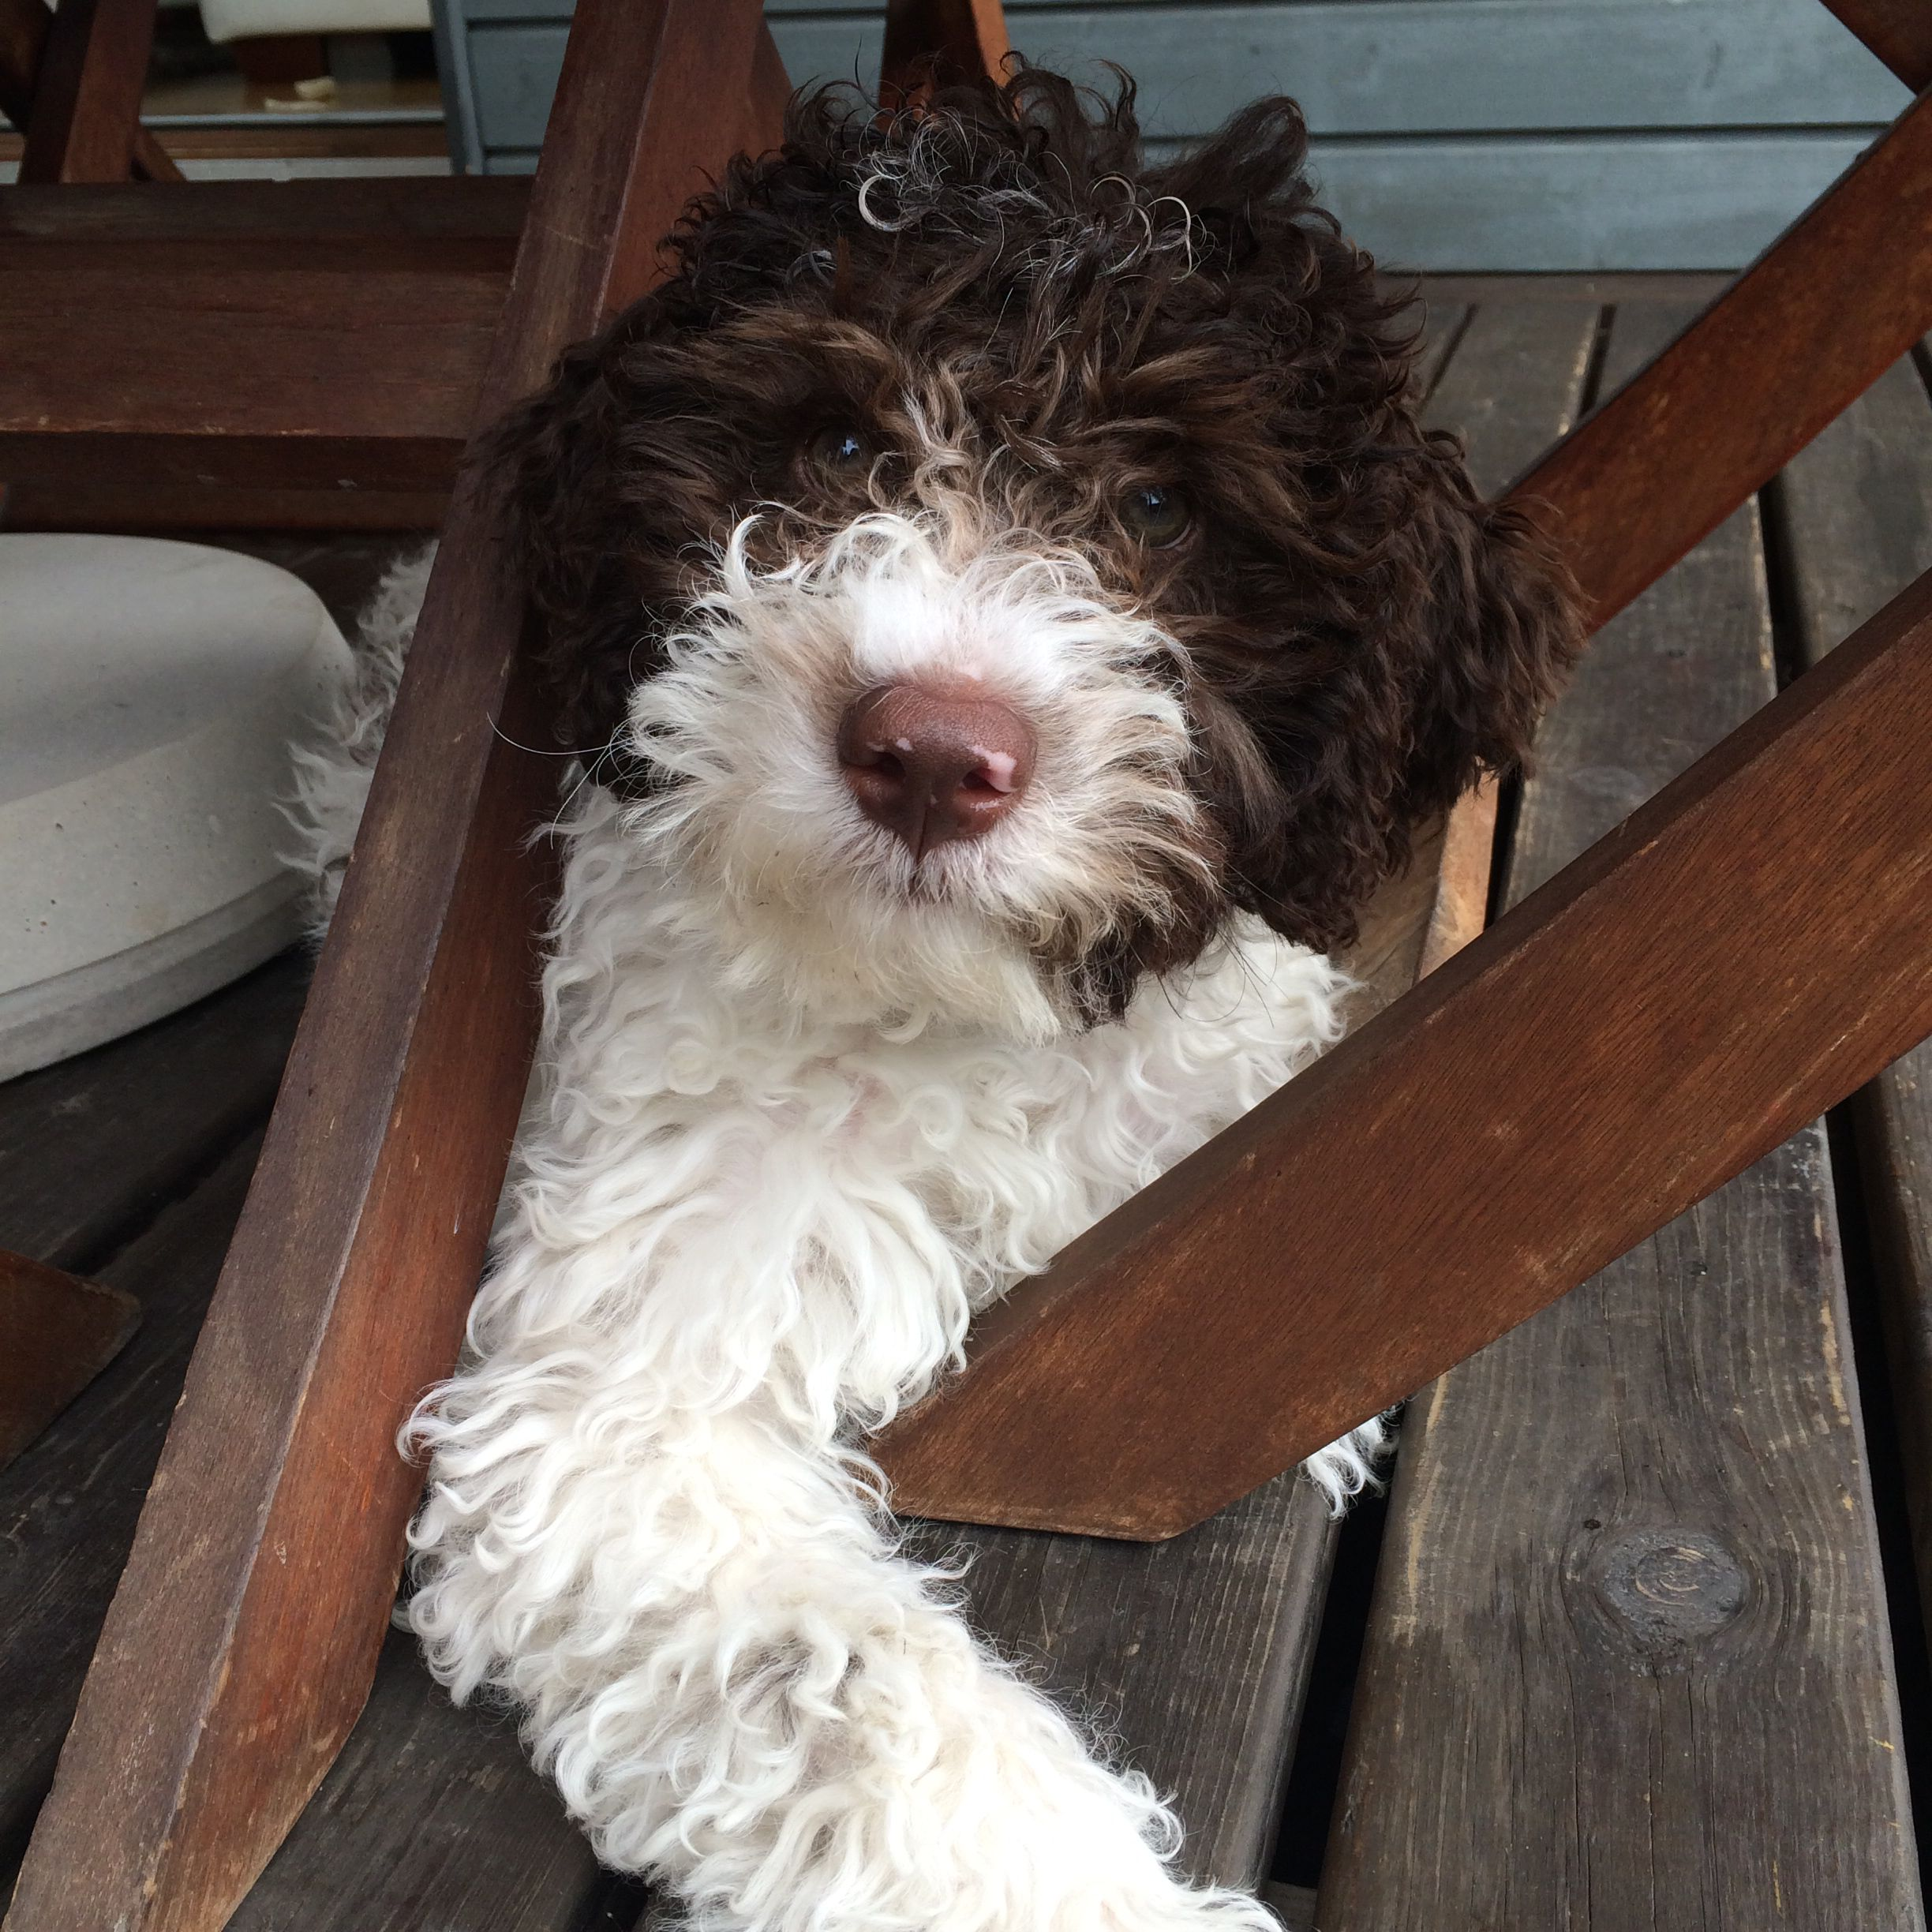 My 13 Weeks Old Lagotto Romagnolo Puppy Puppies Puppies And Kitties Dog Friends